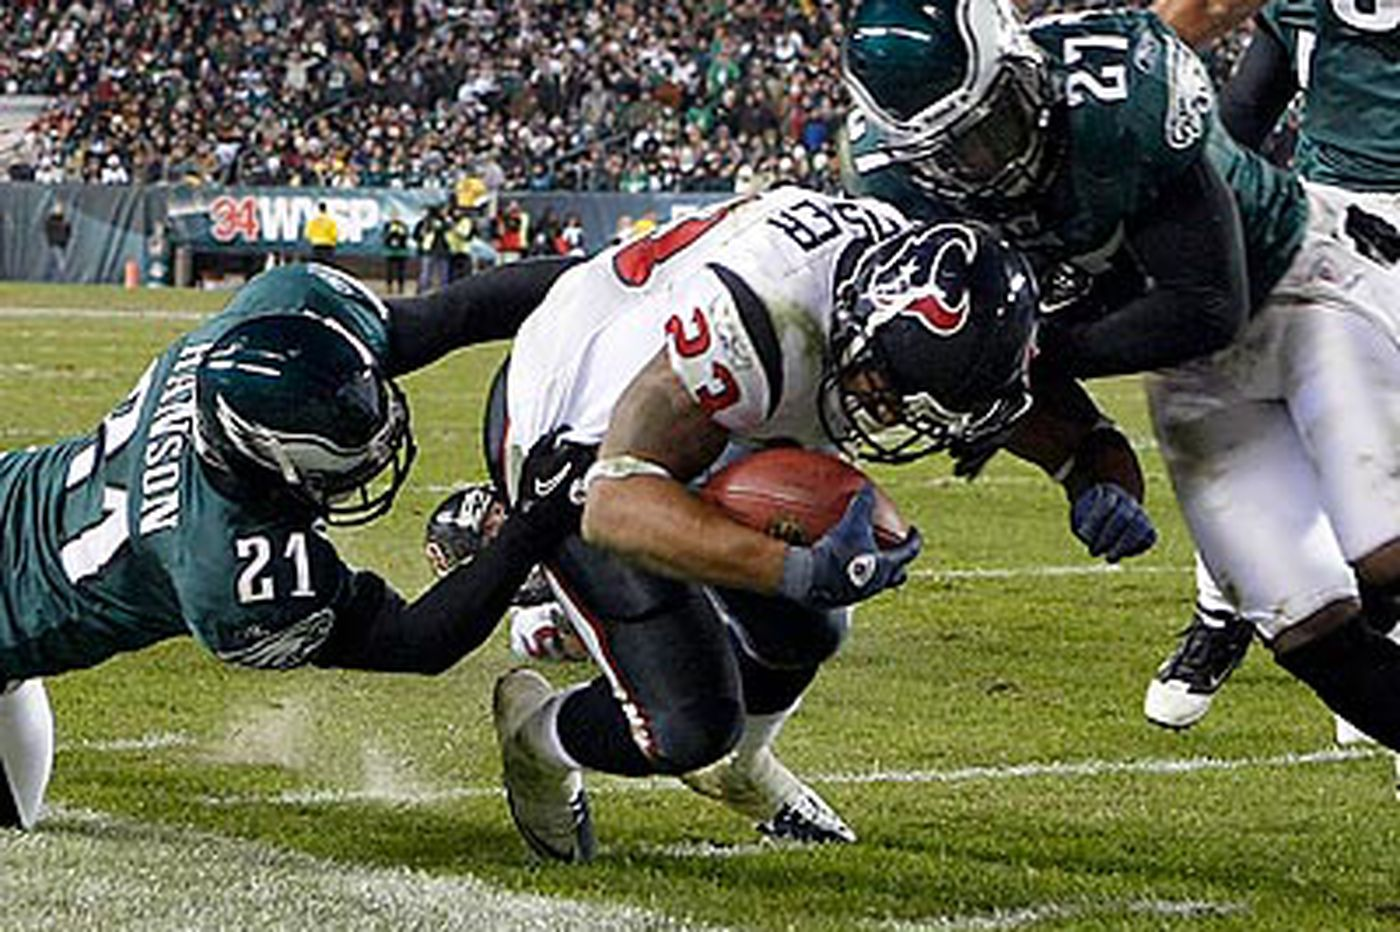 Paul Domowitch: Eagles need to shore up red-zone defense